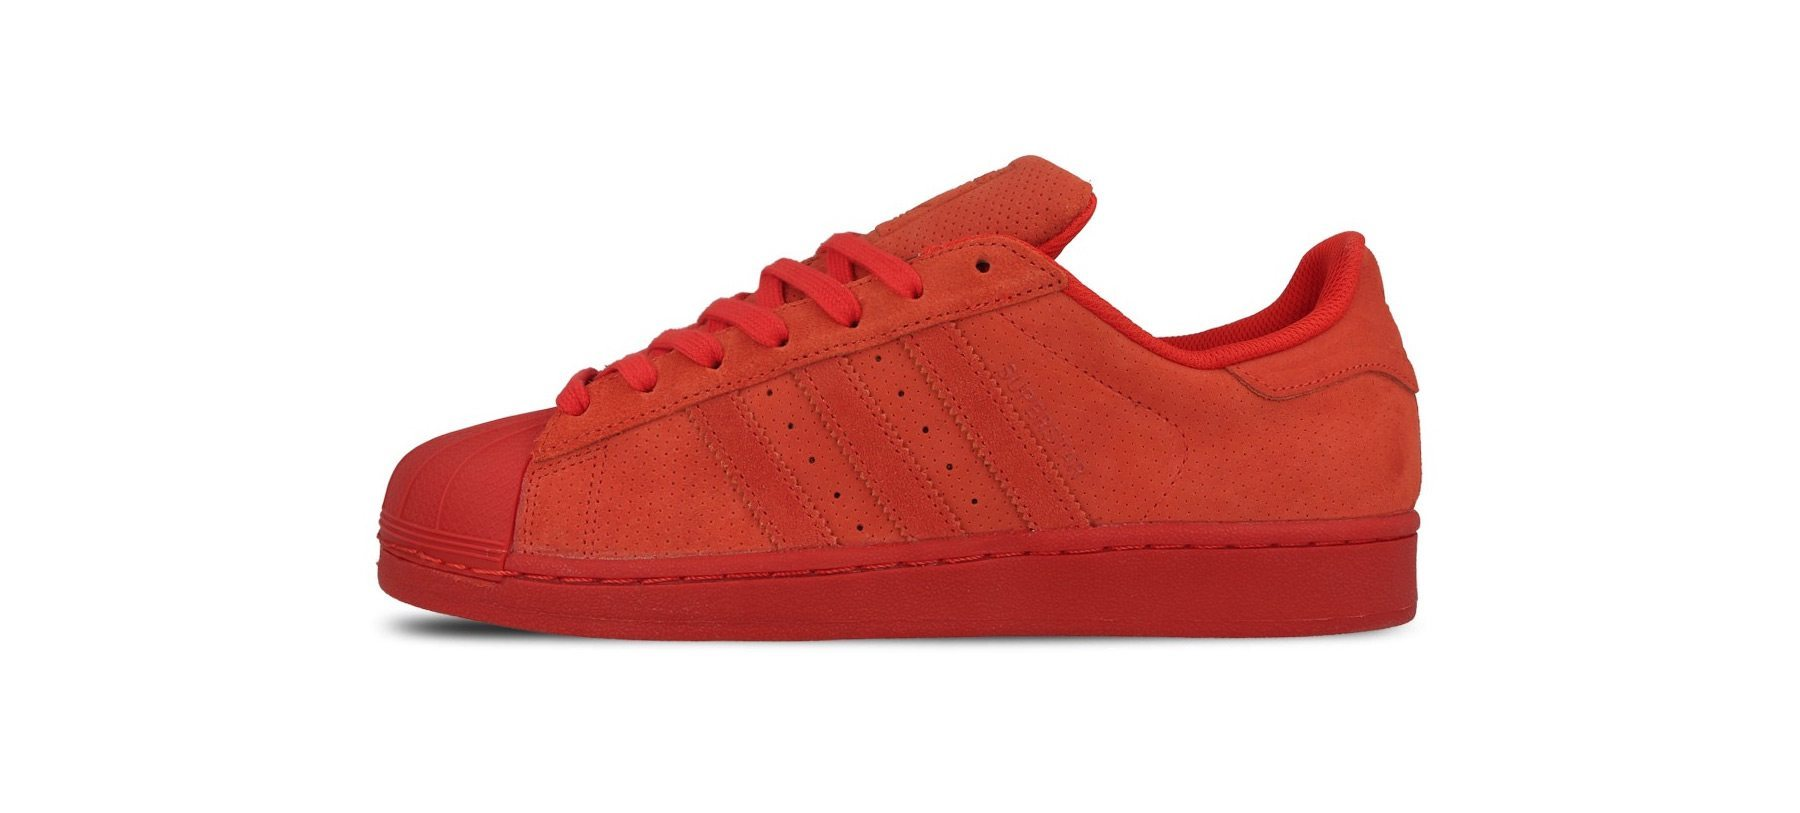 adidas Originals Superstar All Red